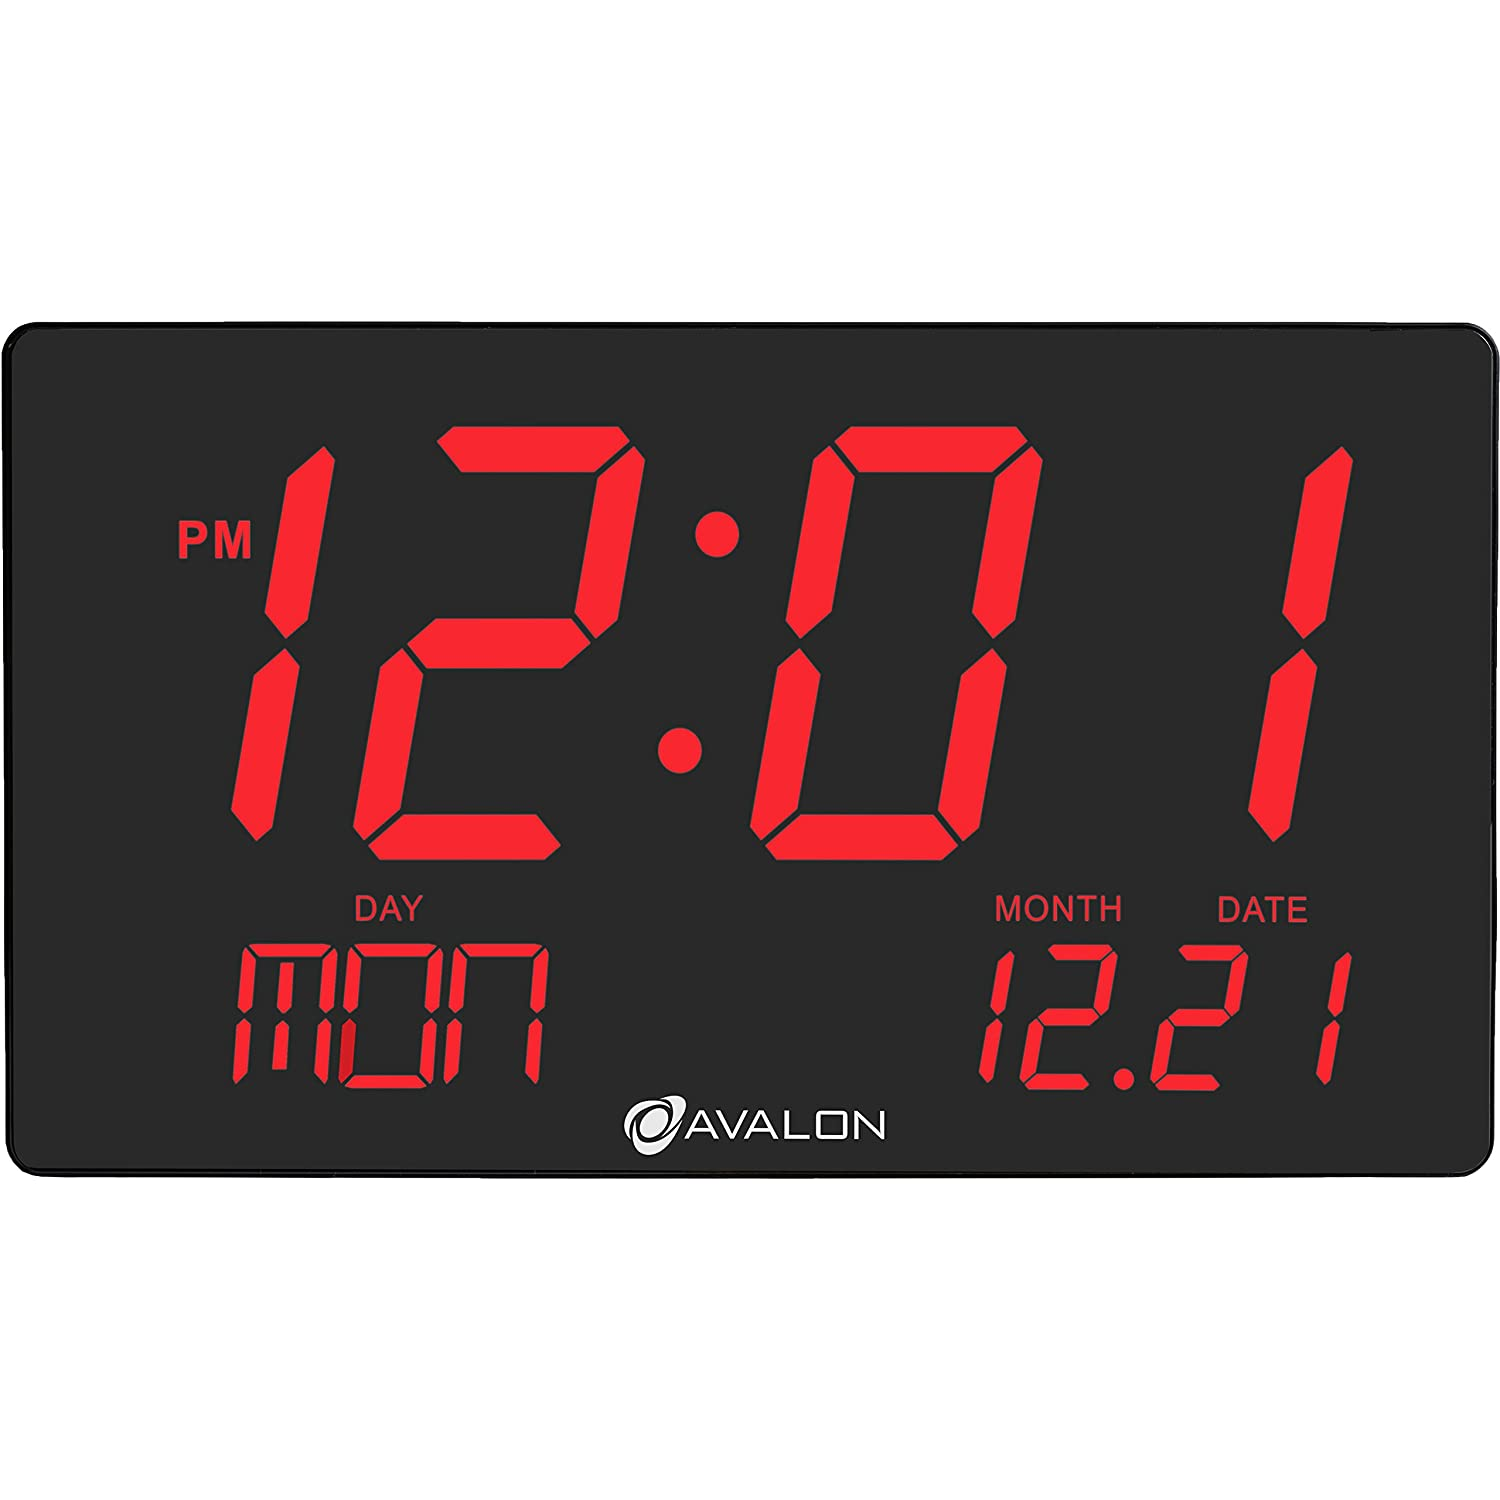 Amazon avalon oversized led digital clock extra large amazon avalon oversized led digital clock extra large display easy to read 3 inch digits sleek design wall shelf clock for home or office use amipublicfo Images